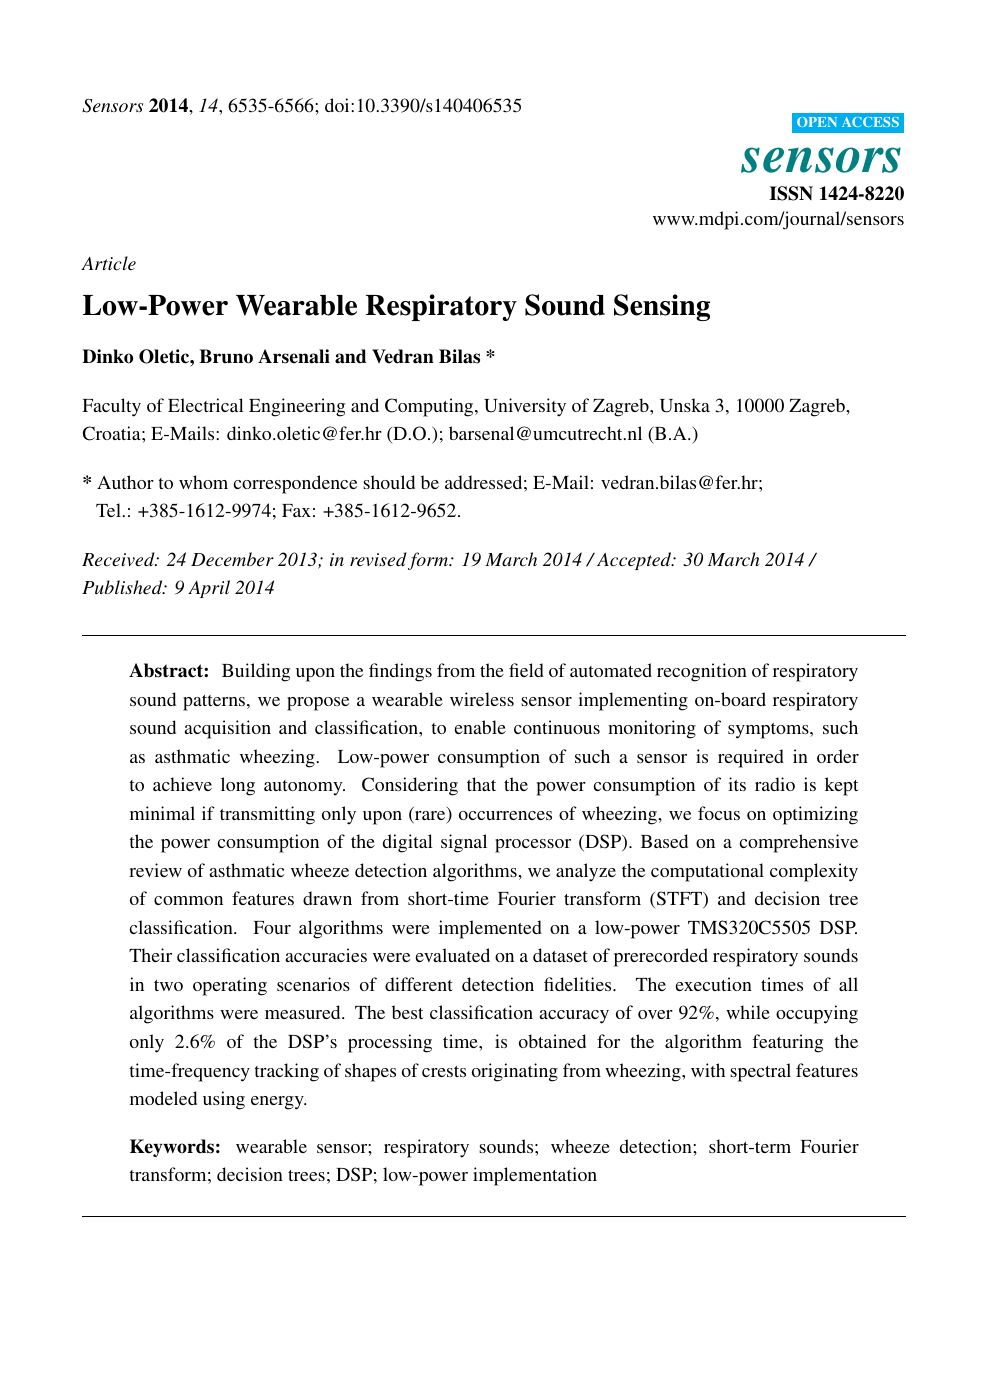 Low-Power Wearable Respiratory Sound Sensing – topic of